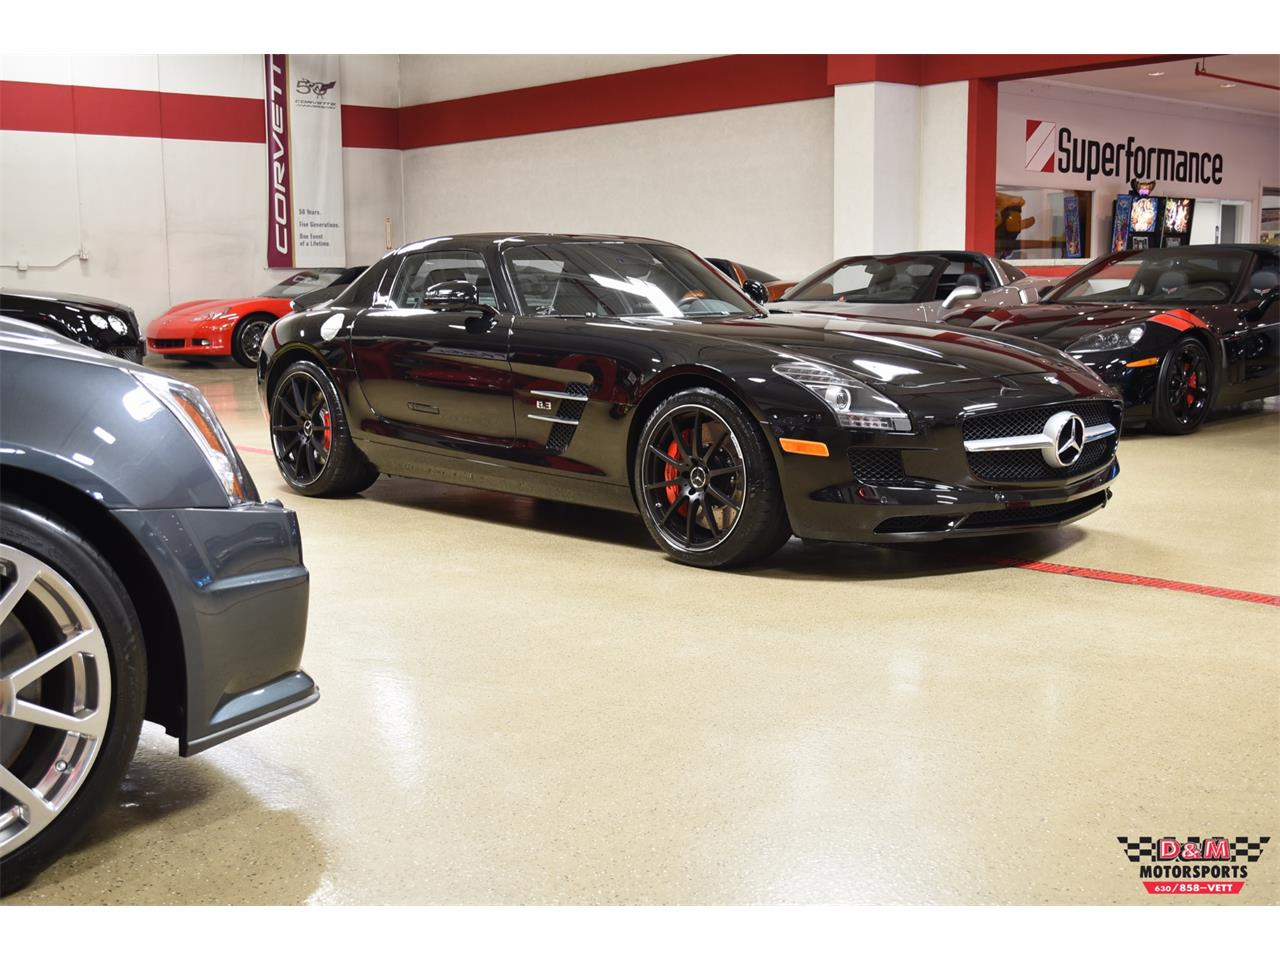 Large Picture of '12 Mercedes-Benz SLS AMG located in Glen Ellyn Illinois Offered by D & M Motorsports - PXCB